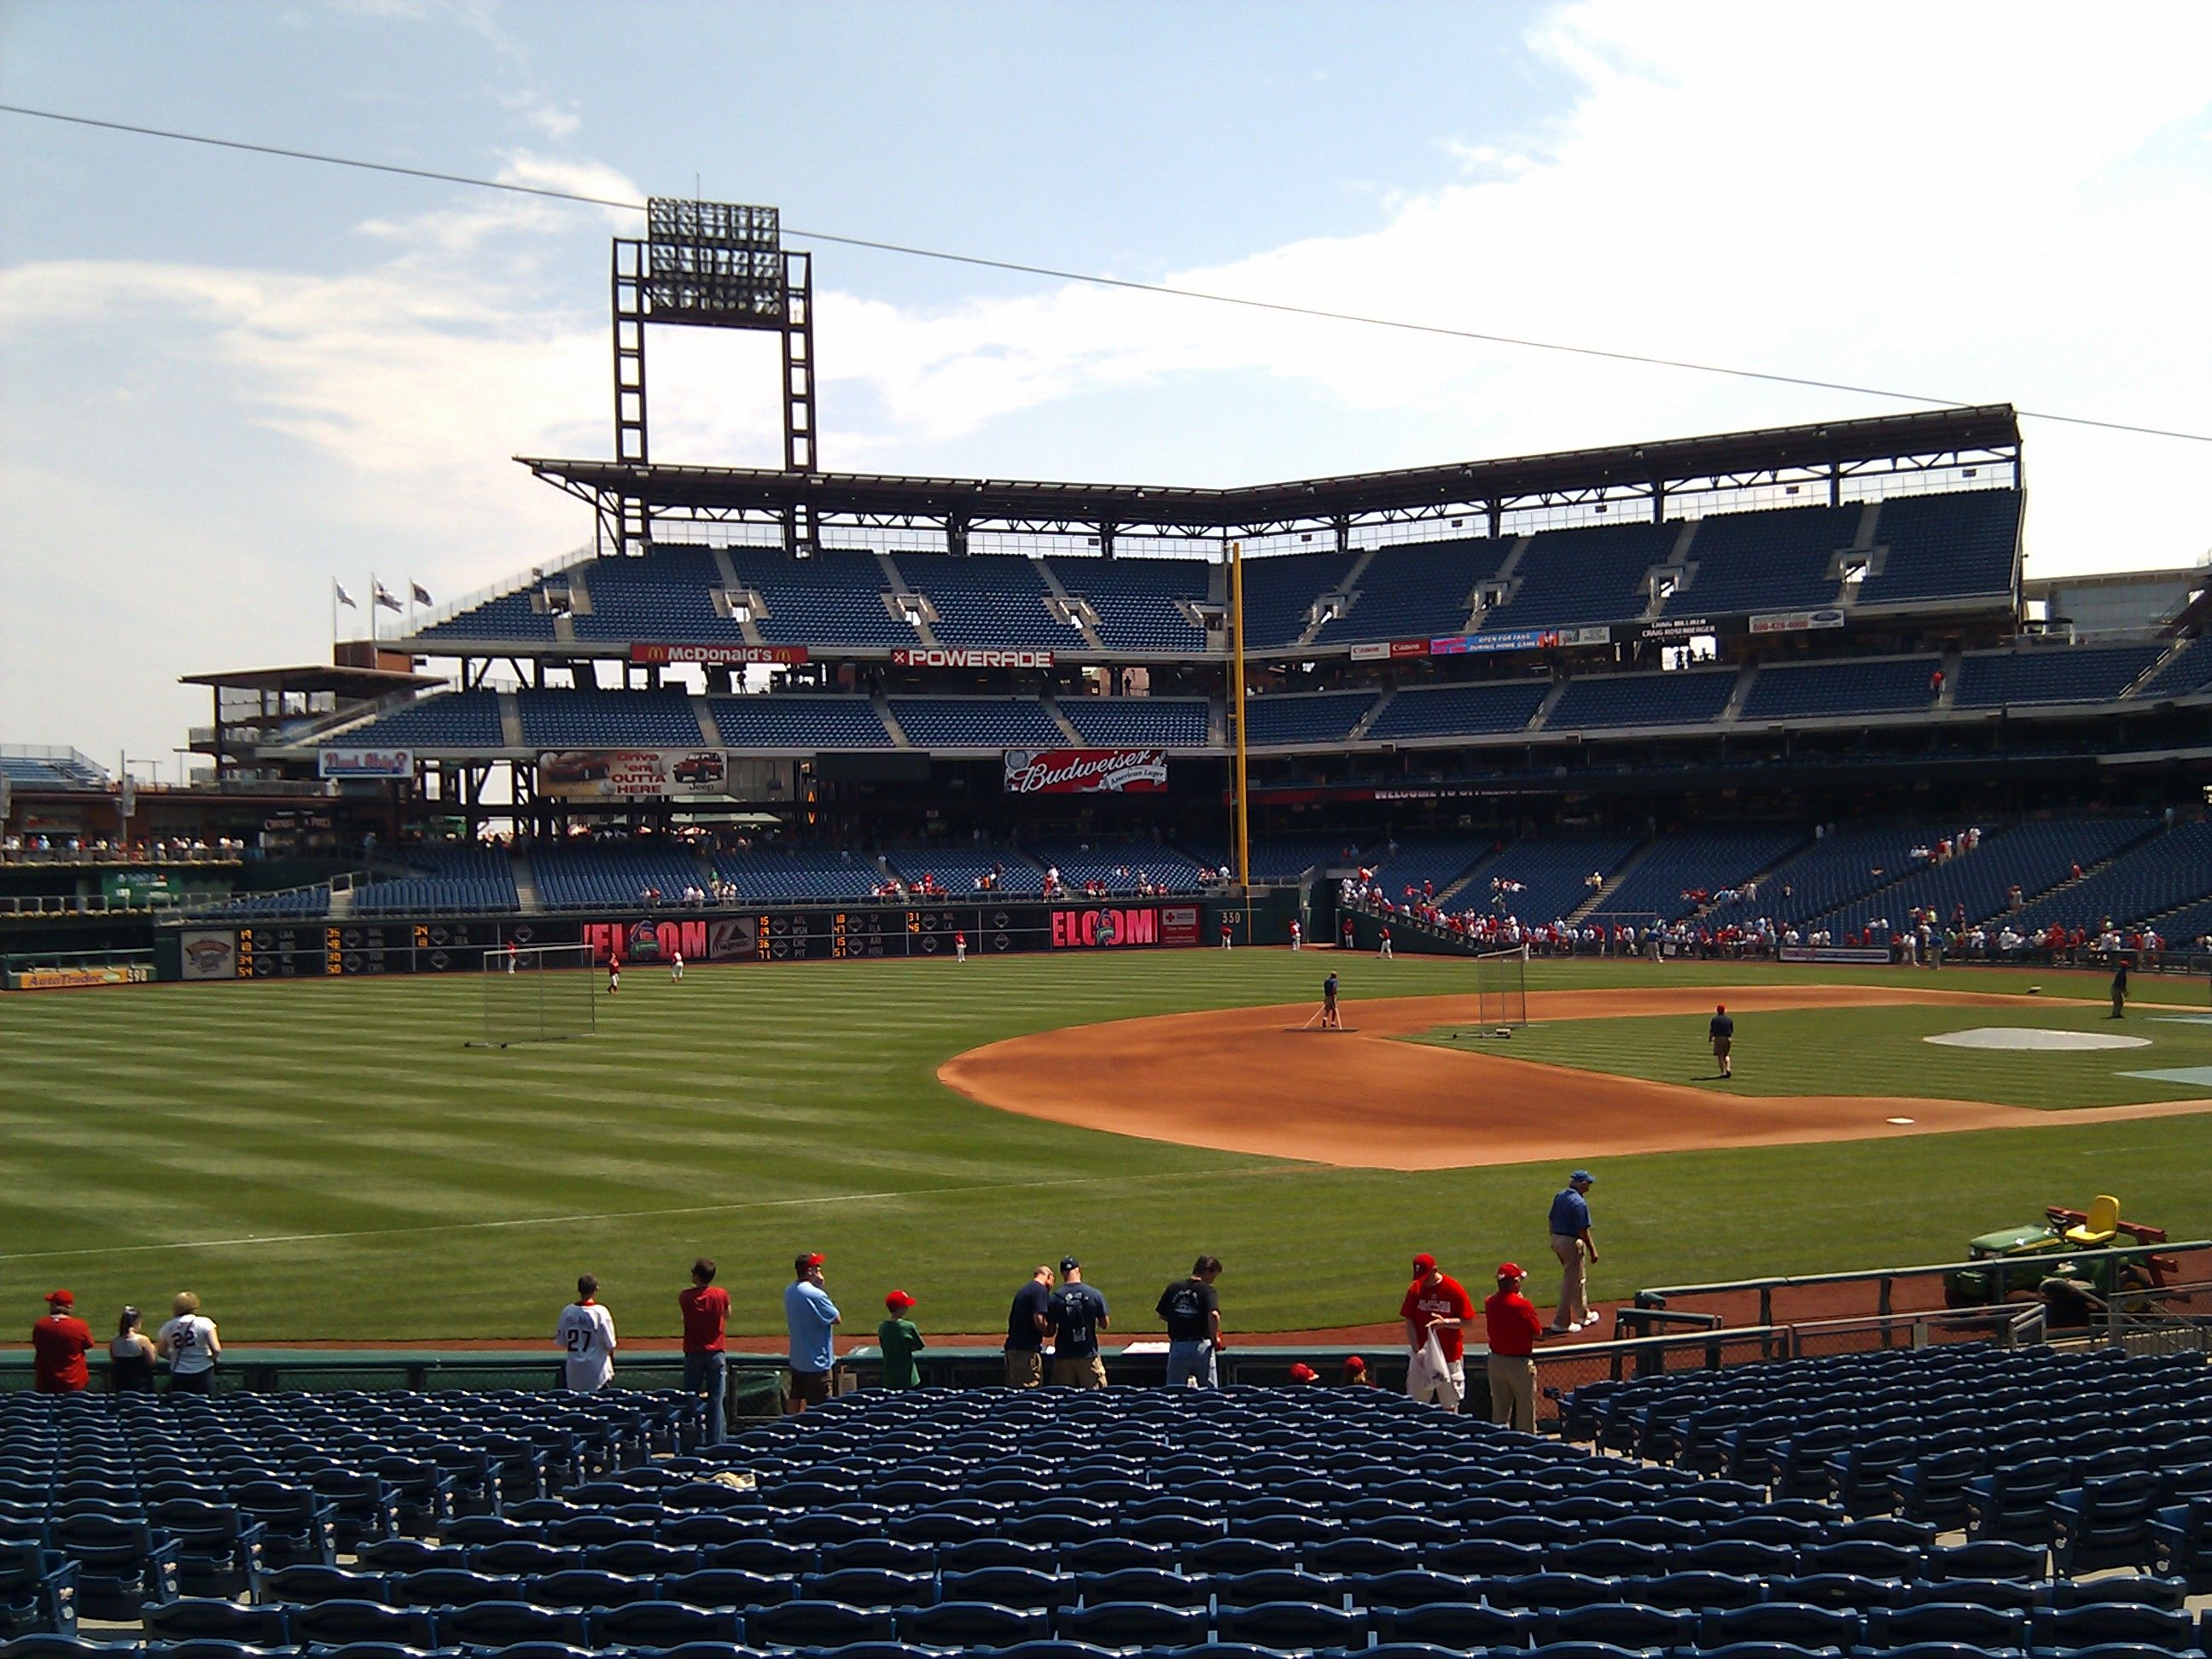 Citizens Bank Park Section 137 Row 16 Seat 12